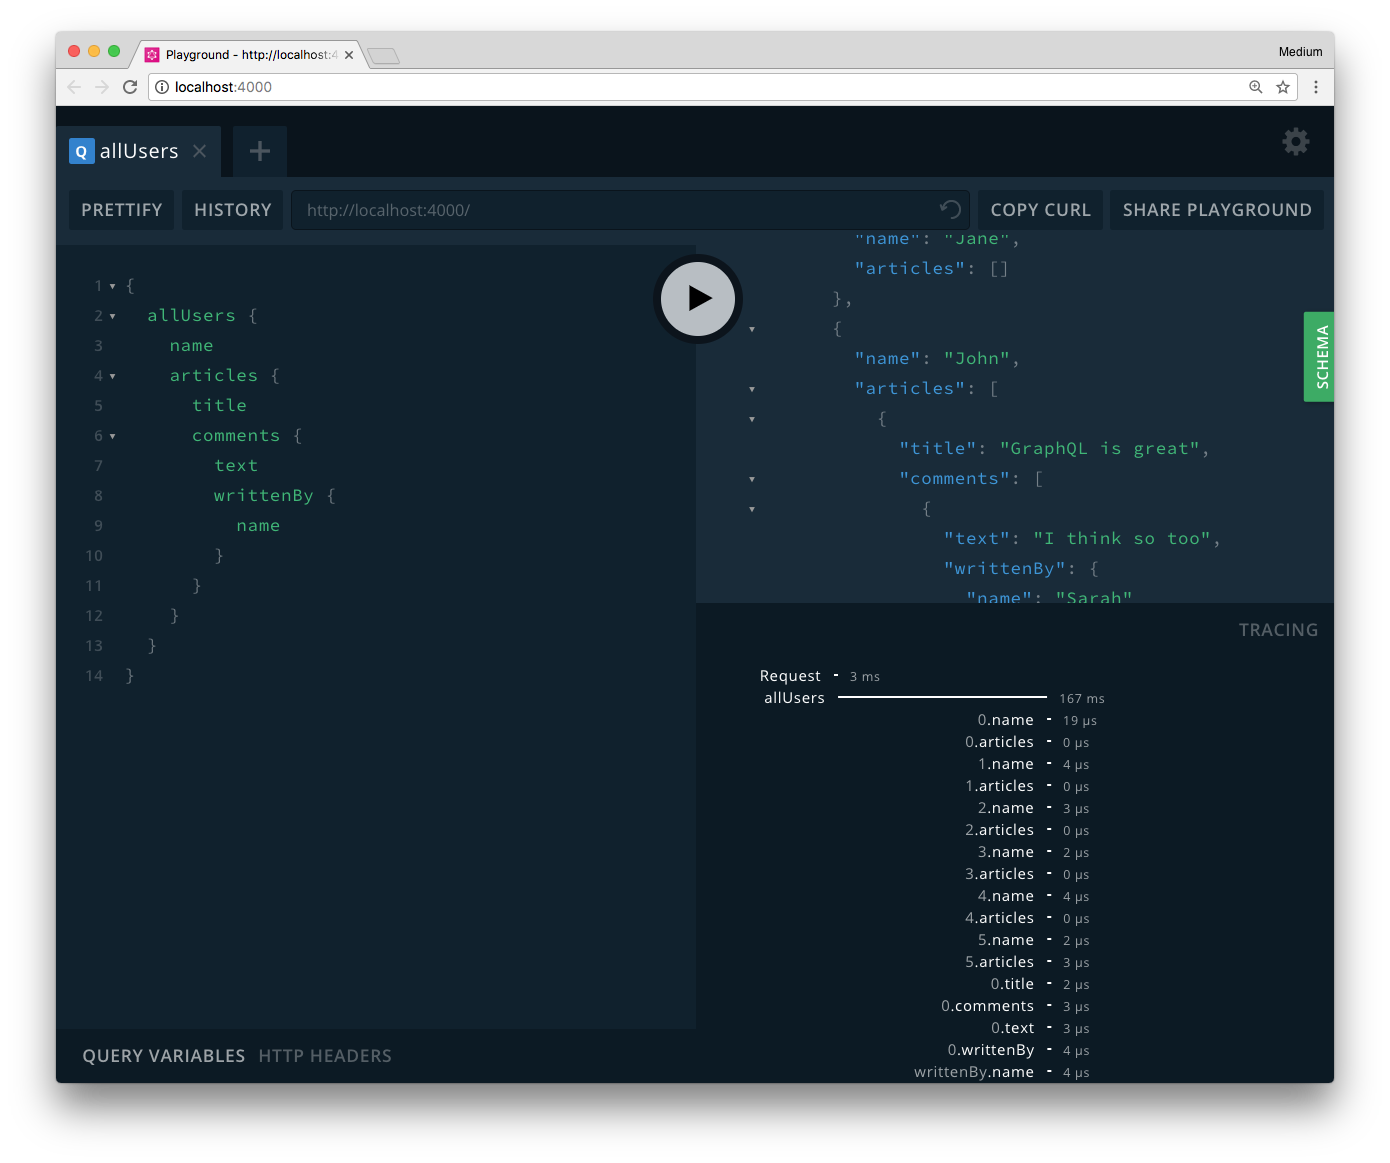 [GraphQL Playgrounds](https://github.com/prismagraphql/graphql-playground) support displaying [tracing](https://github.com/apollographql/apollo-tracing) data for resolvers out-of-the-box (bottom right)